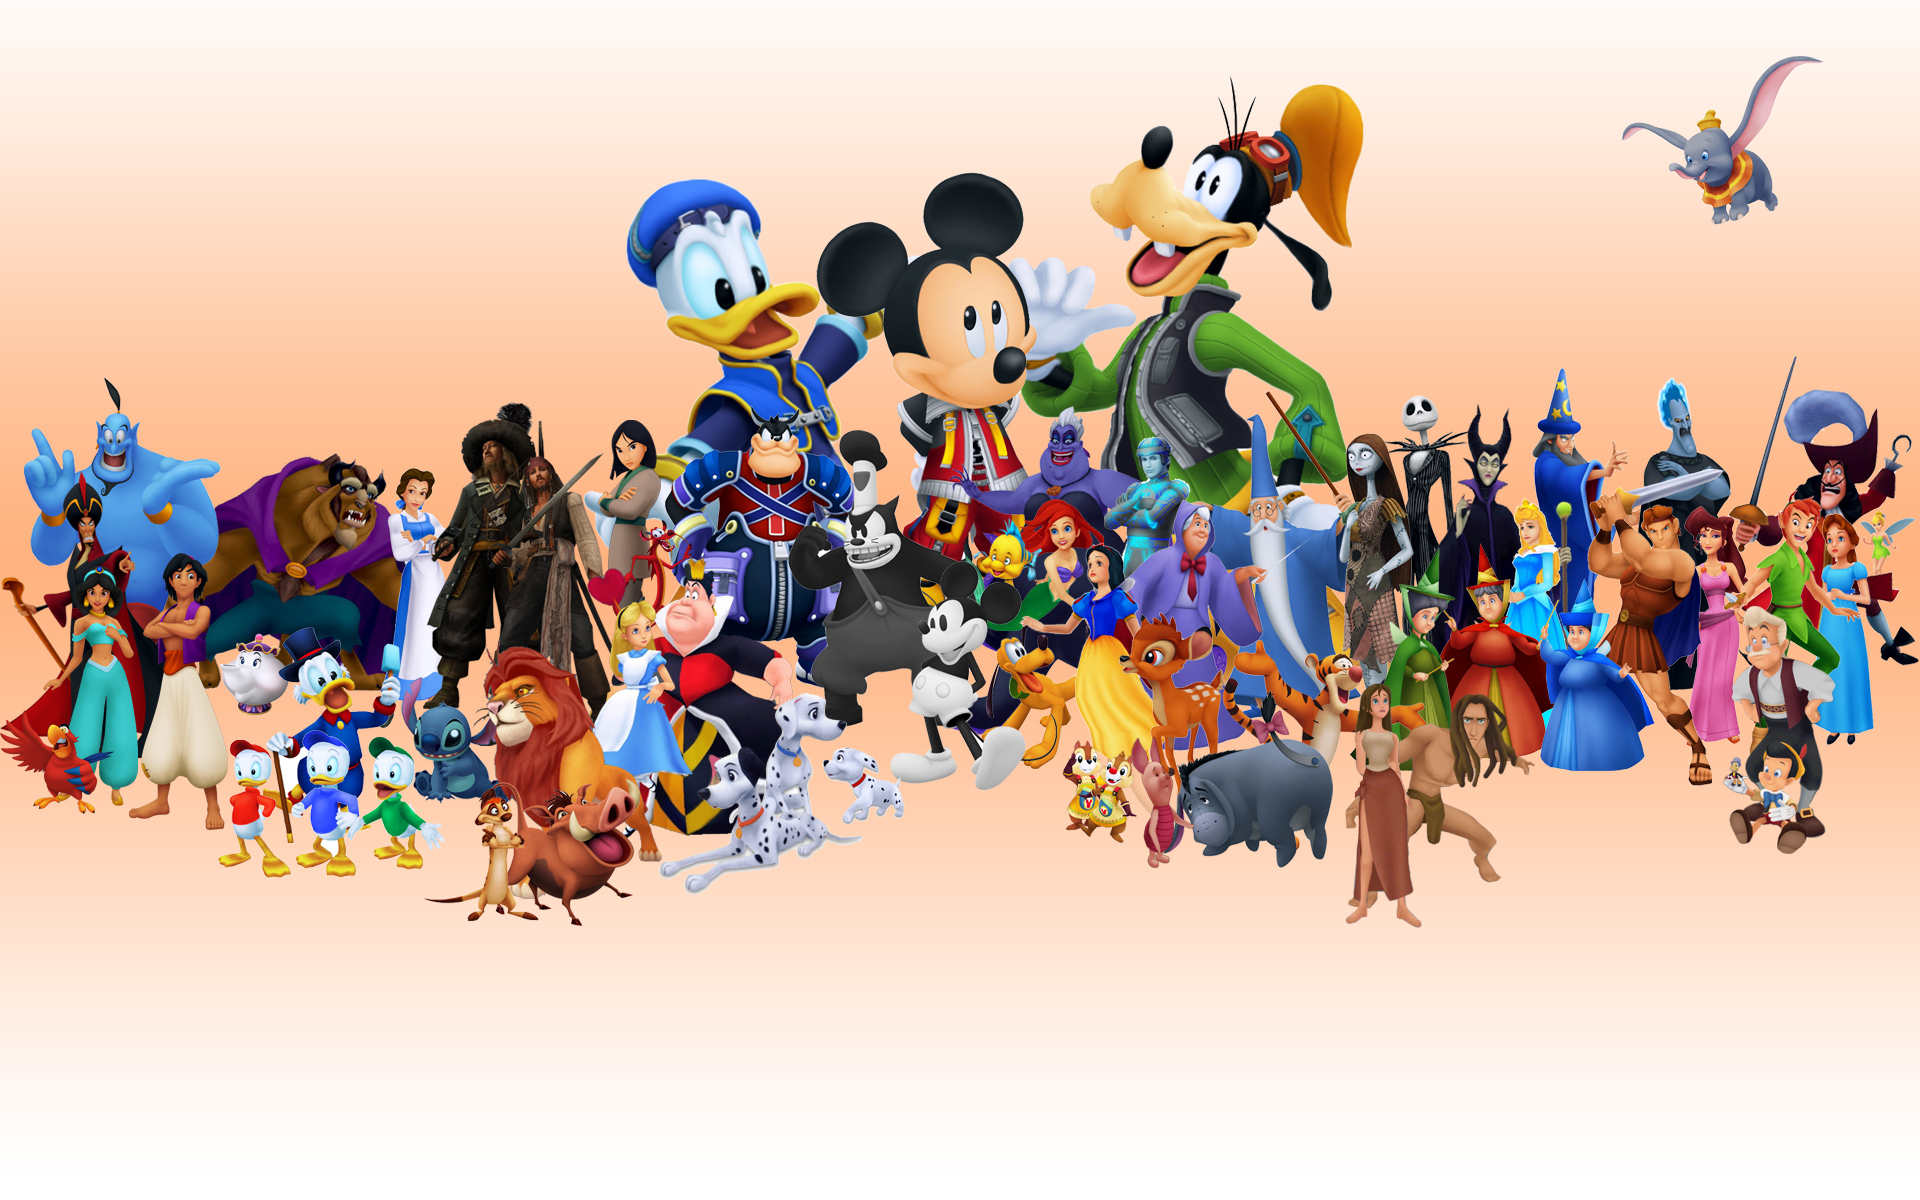 Disney's Characters